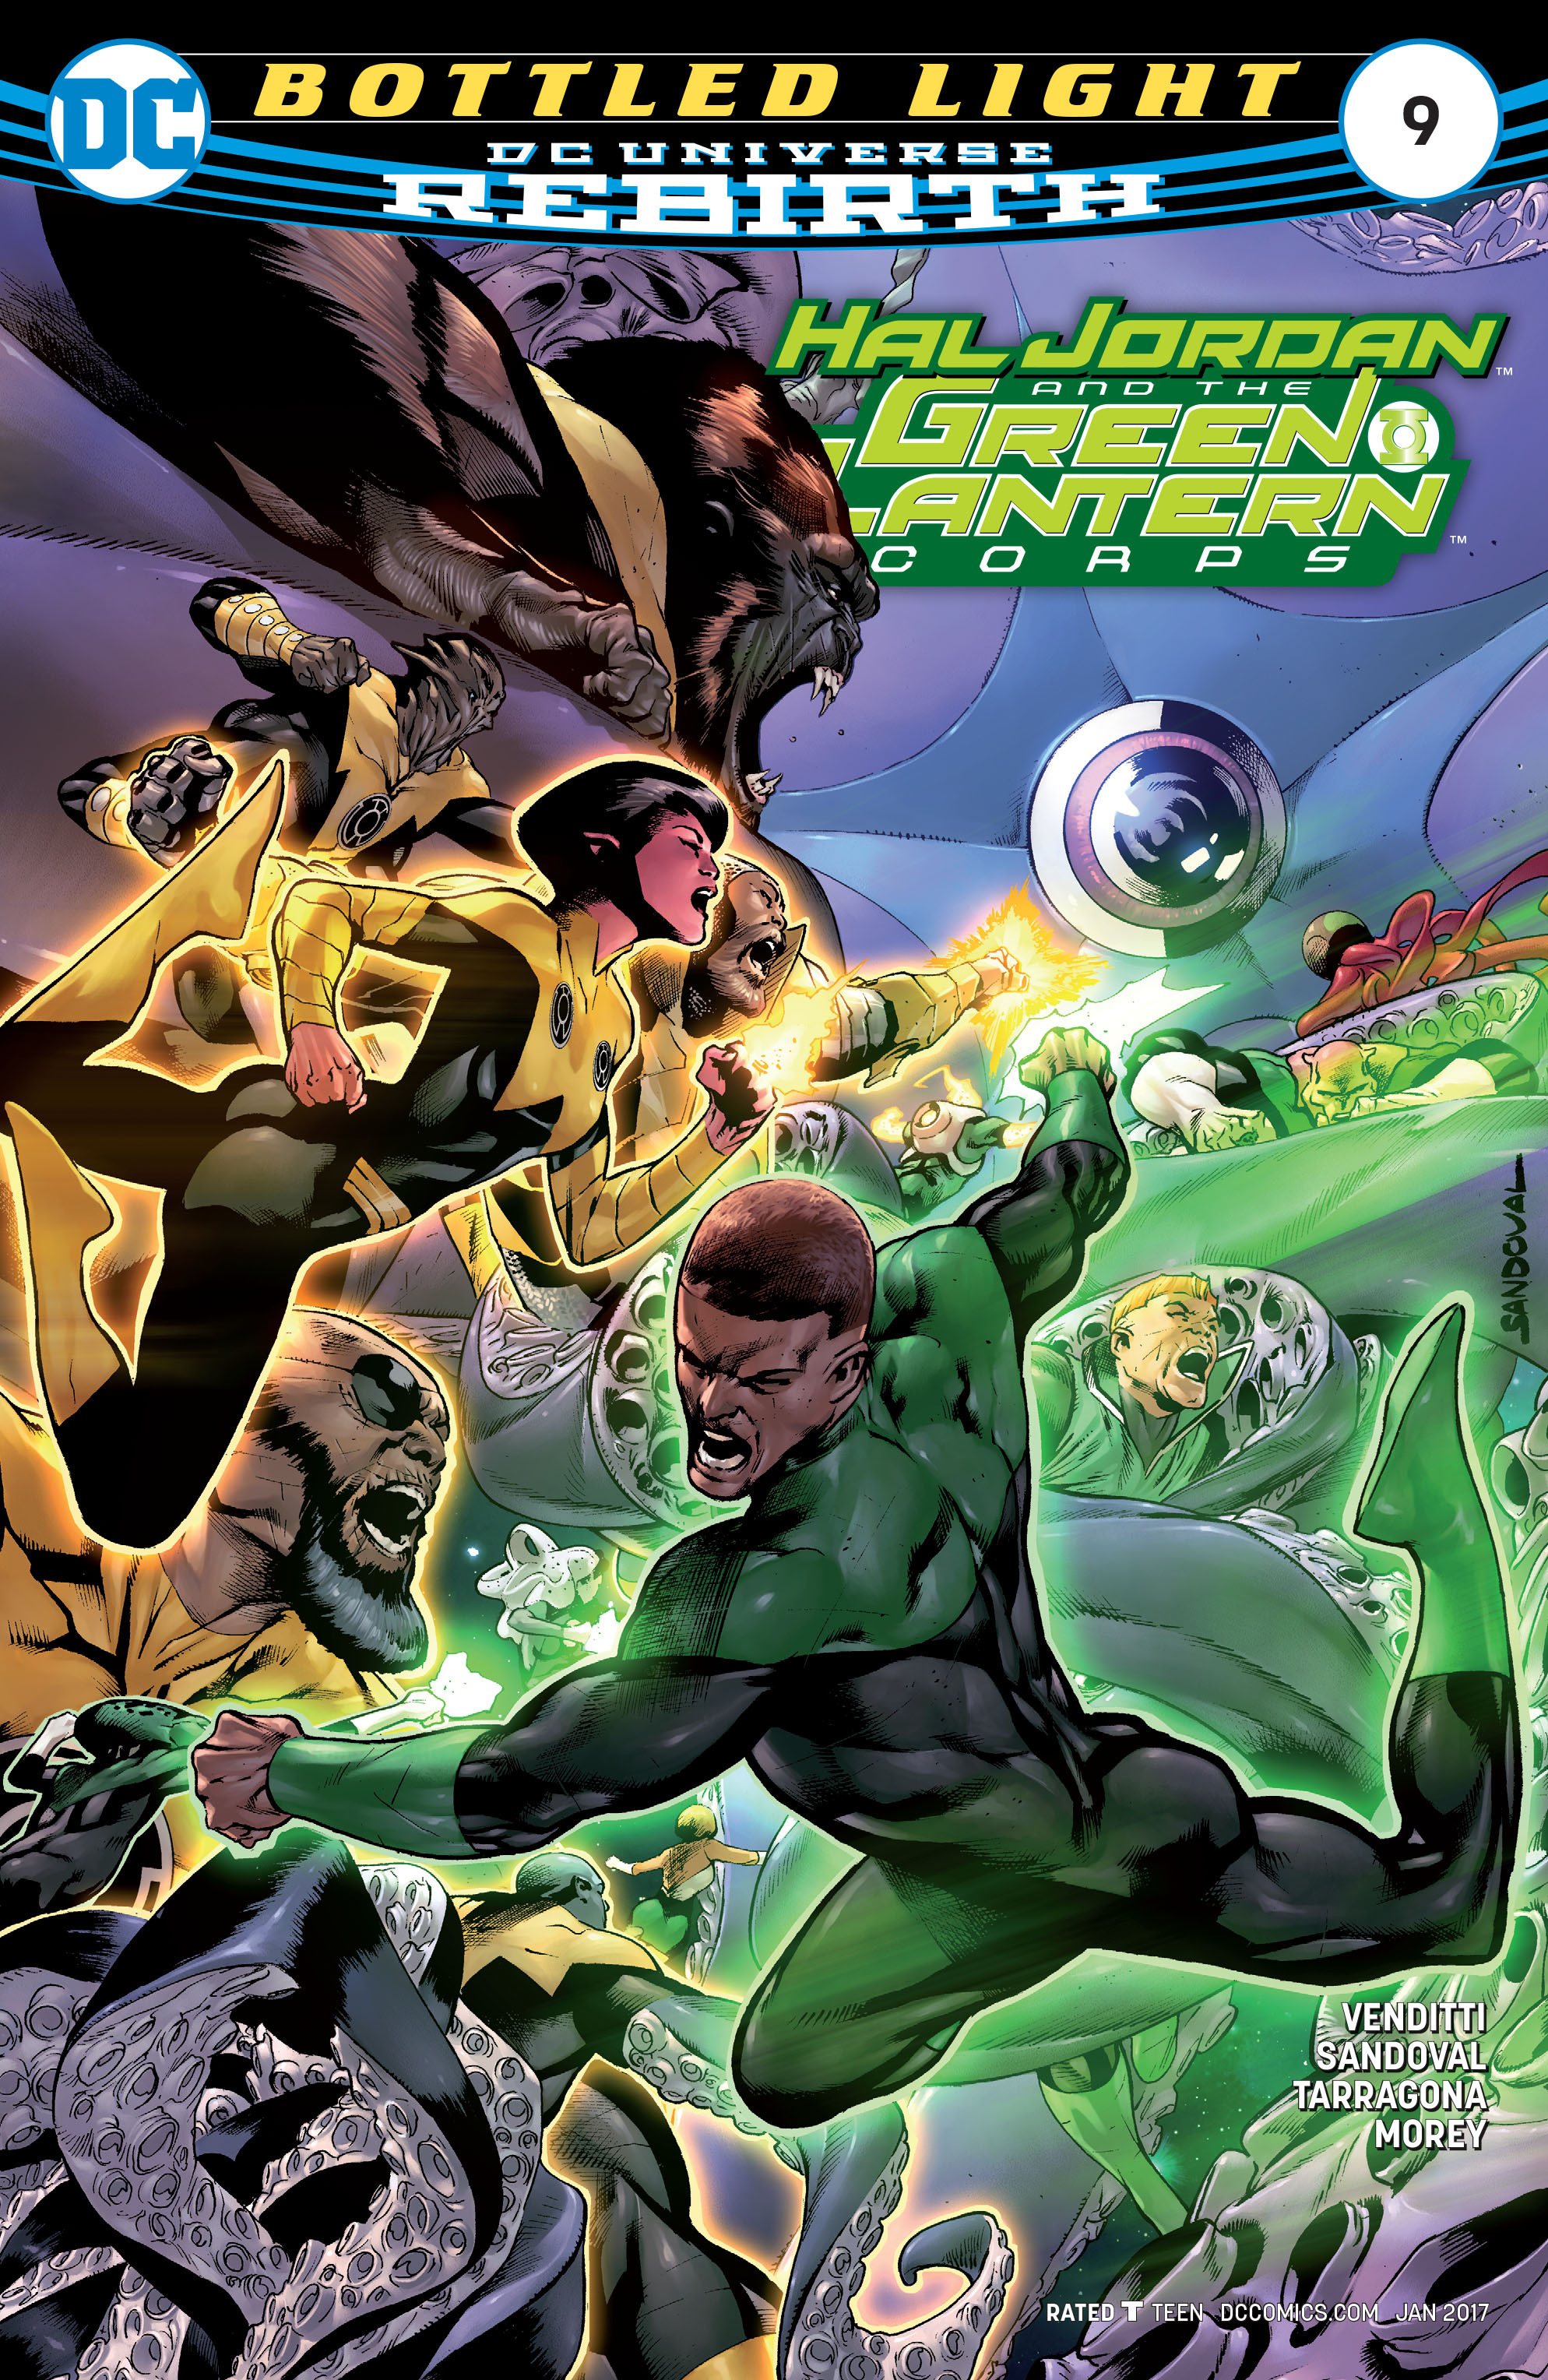 Hal Jordan & the Green Lantern Corps: Rebirth issue 9 - Page 1